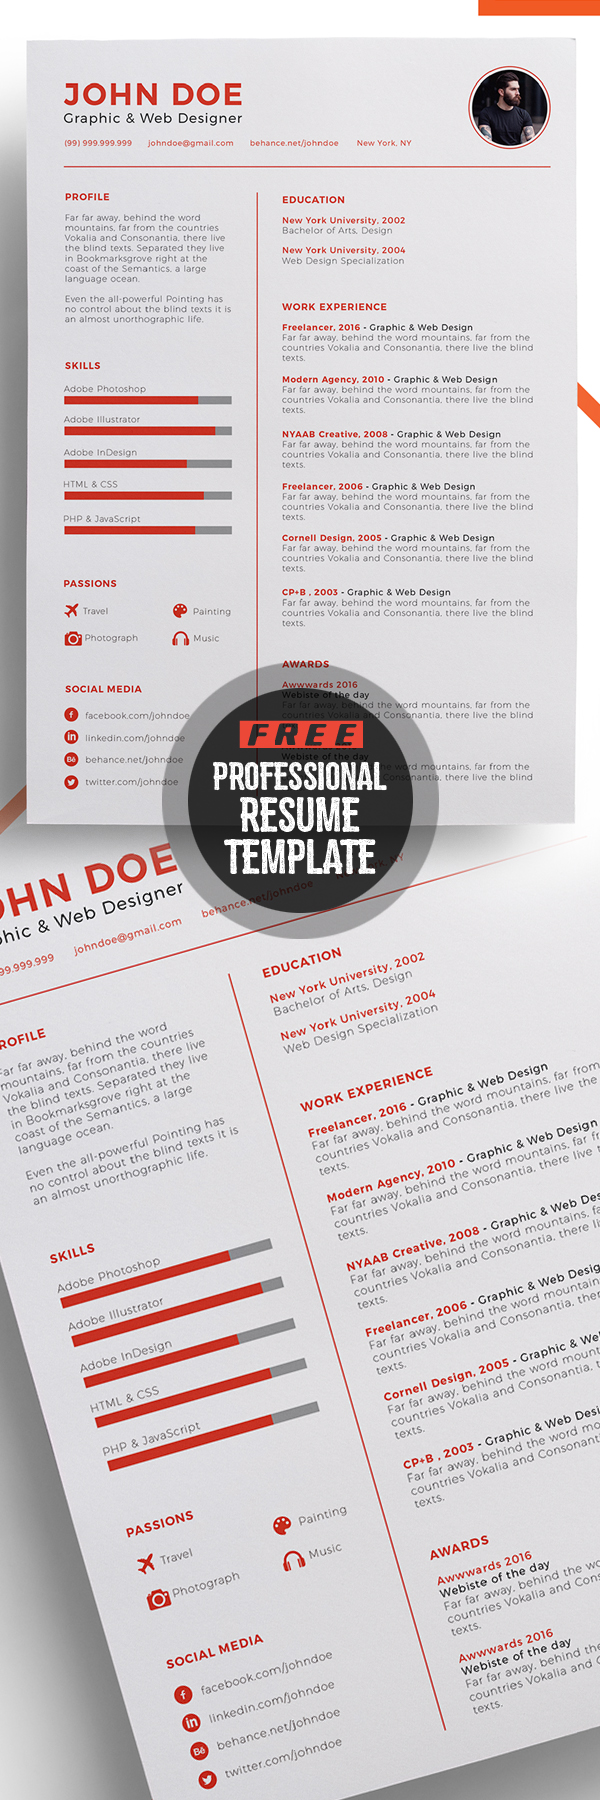 resume templates for 2017 bies graphic design junction professional resume template design